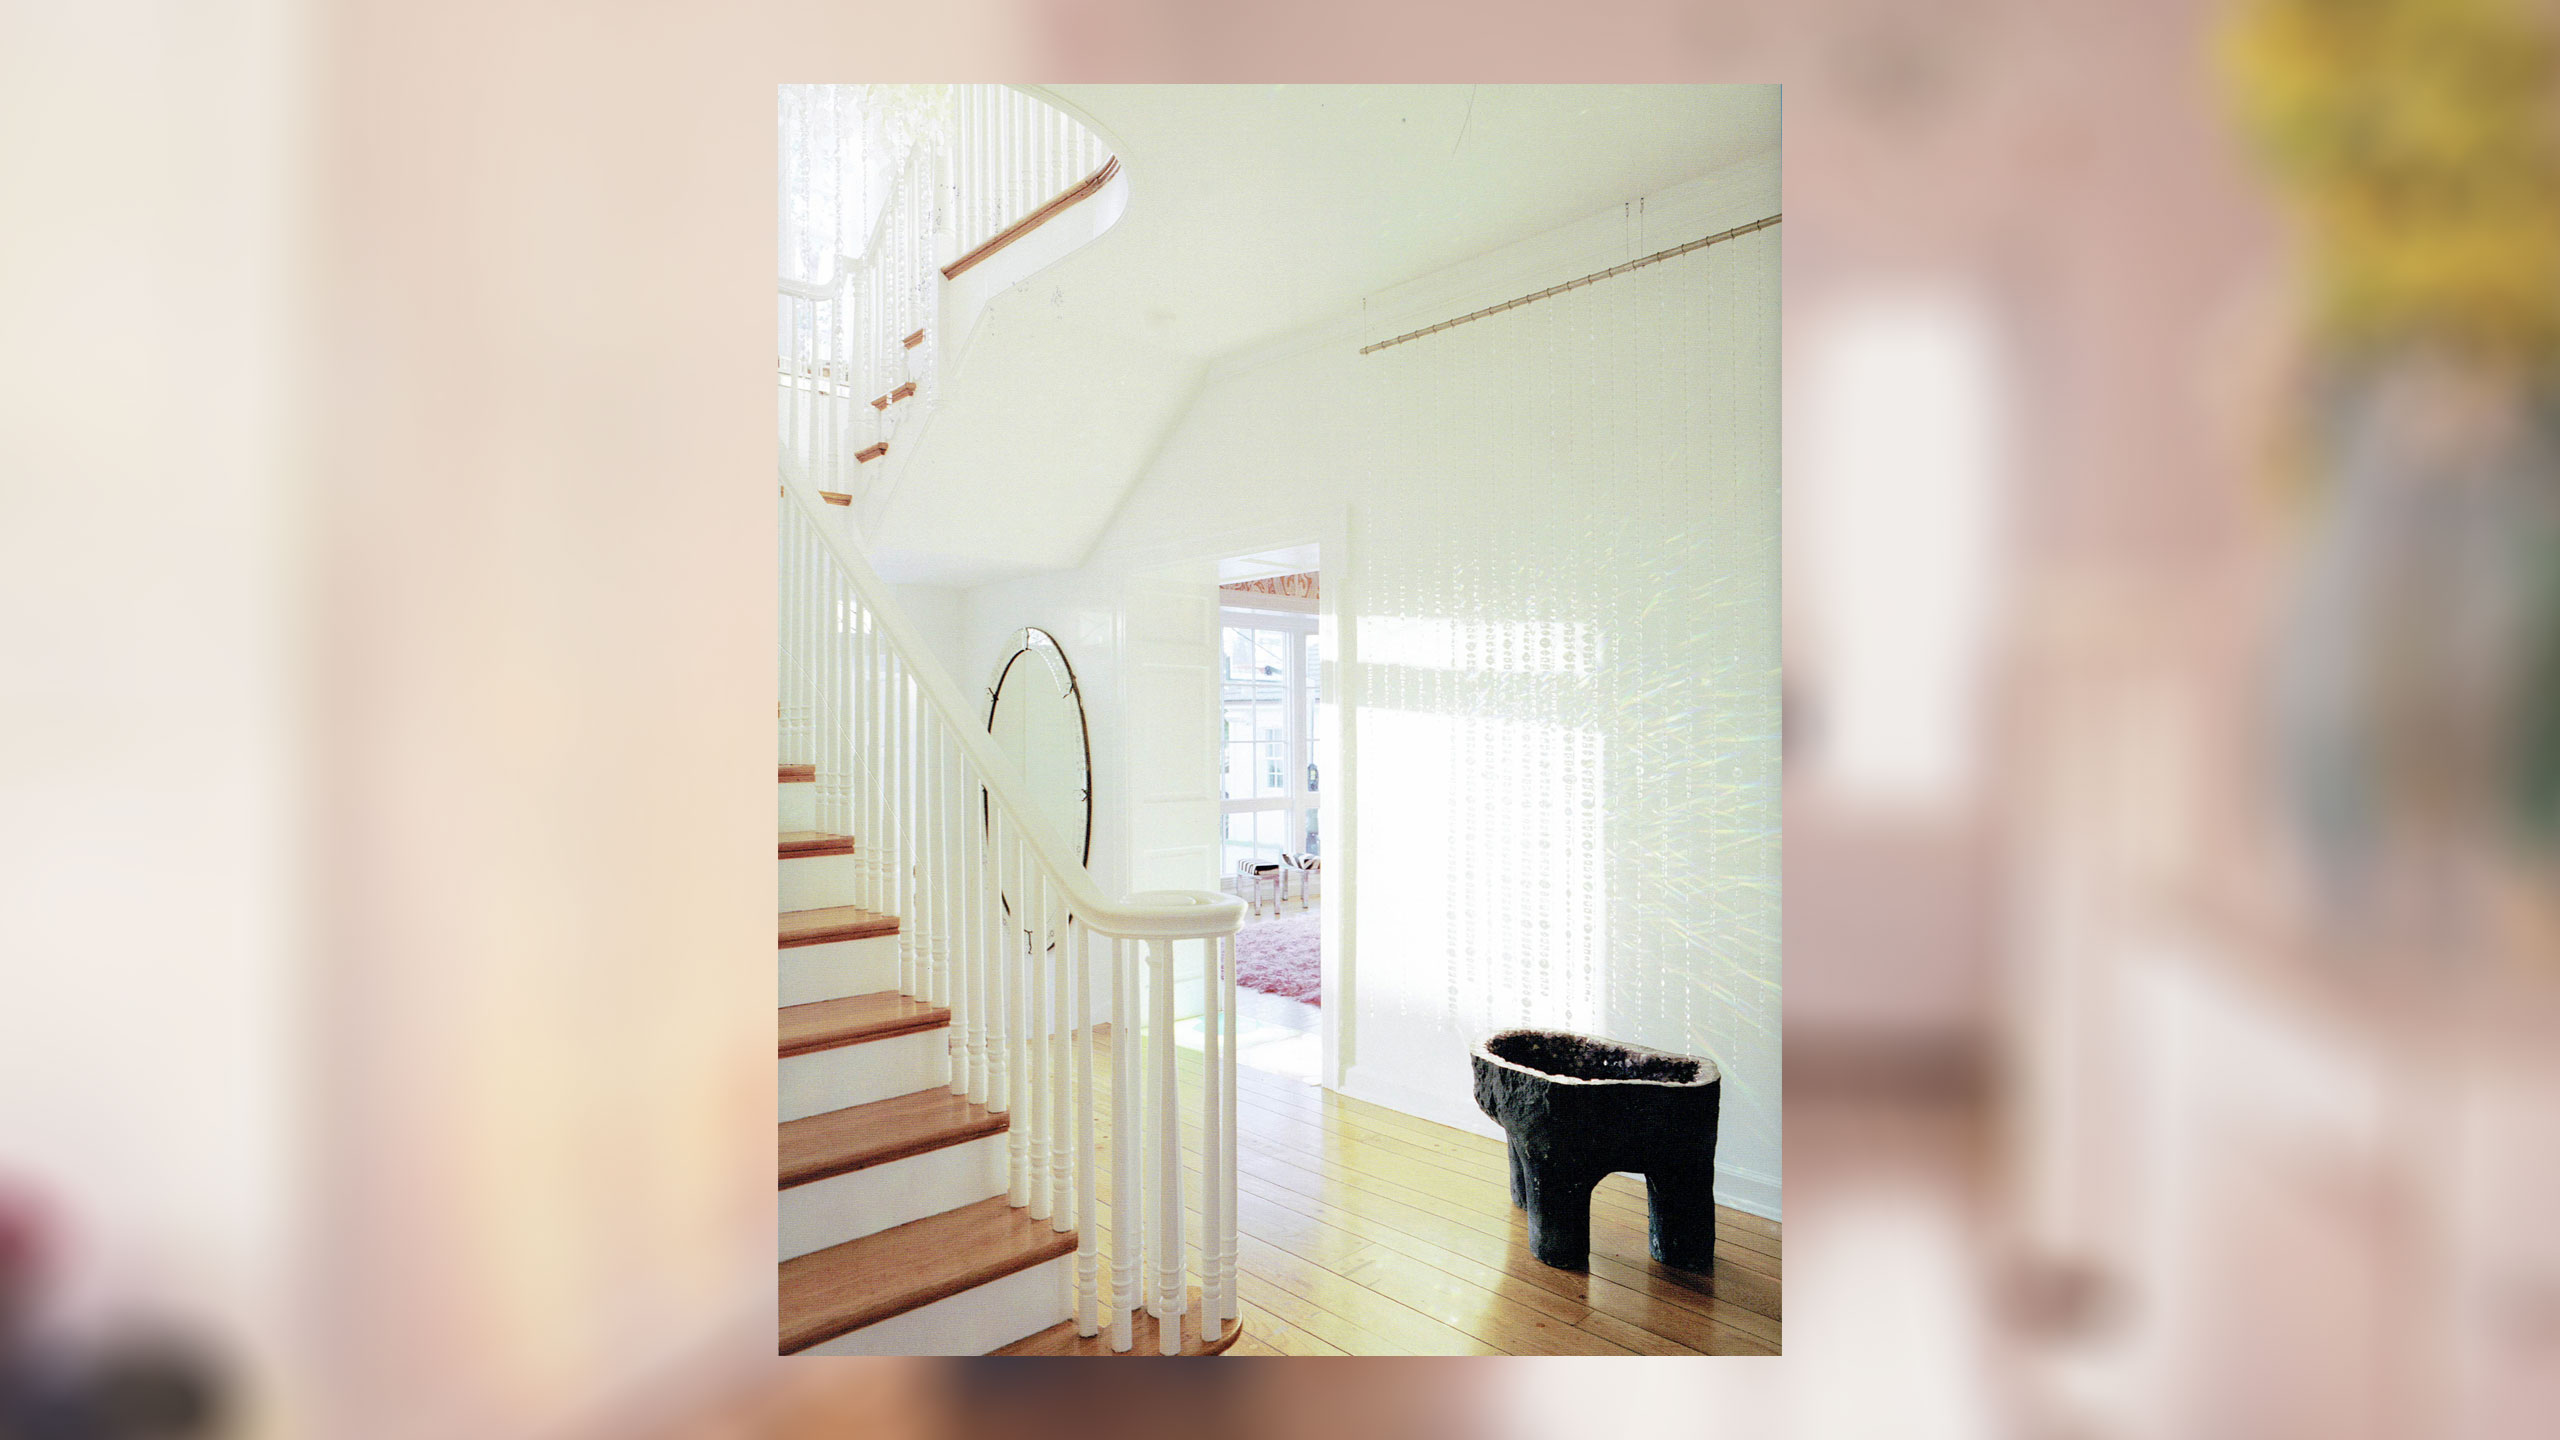 coconut-dilido-island-2560-entry-staircase